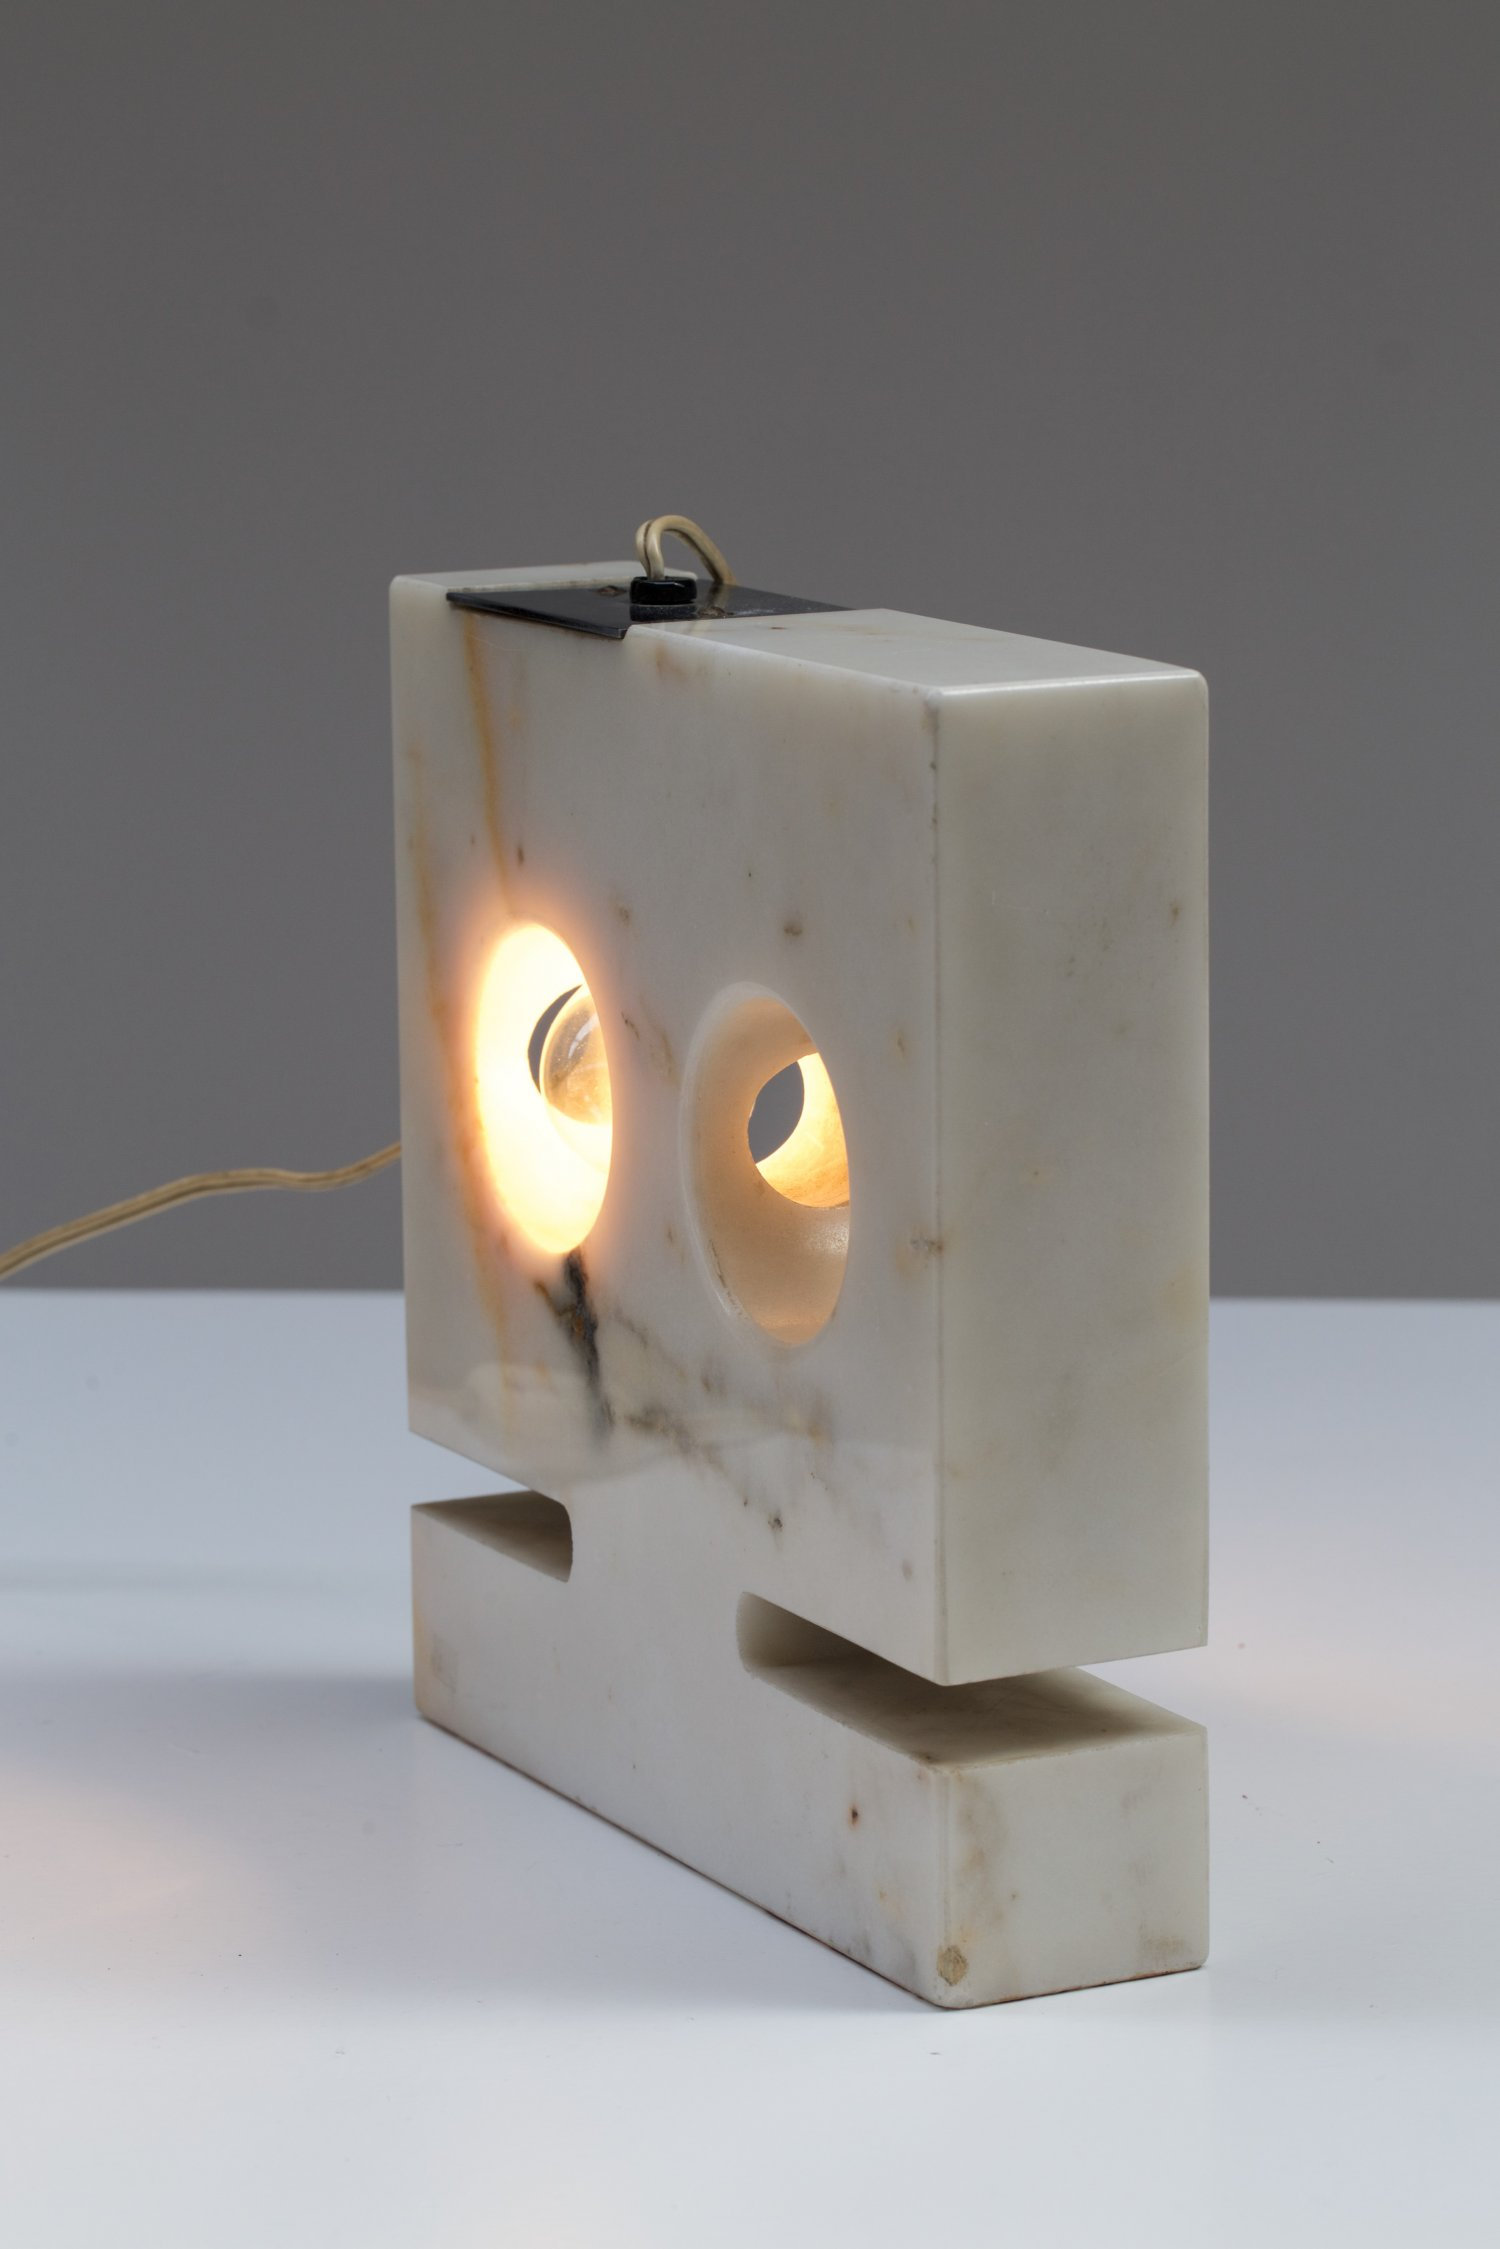 NUCLEO lamp by Sormani